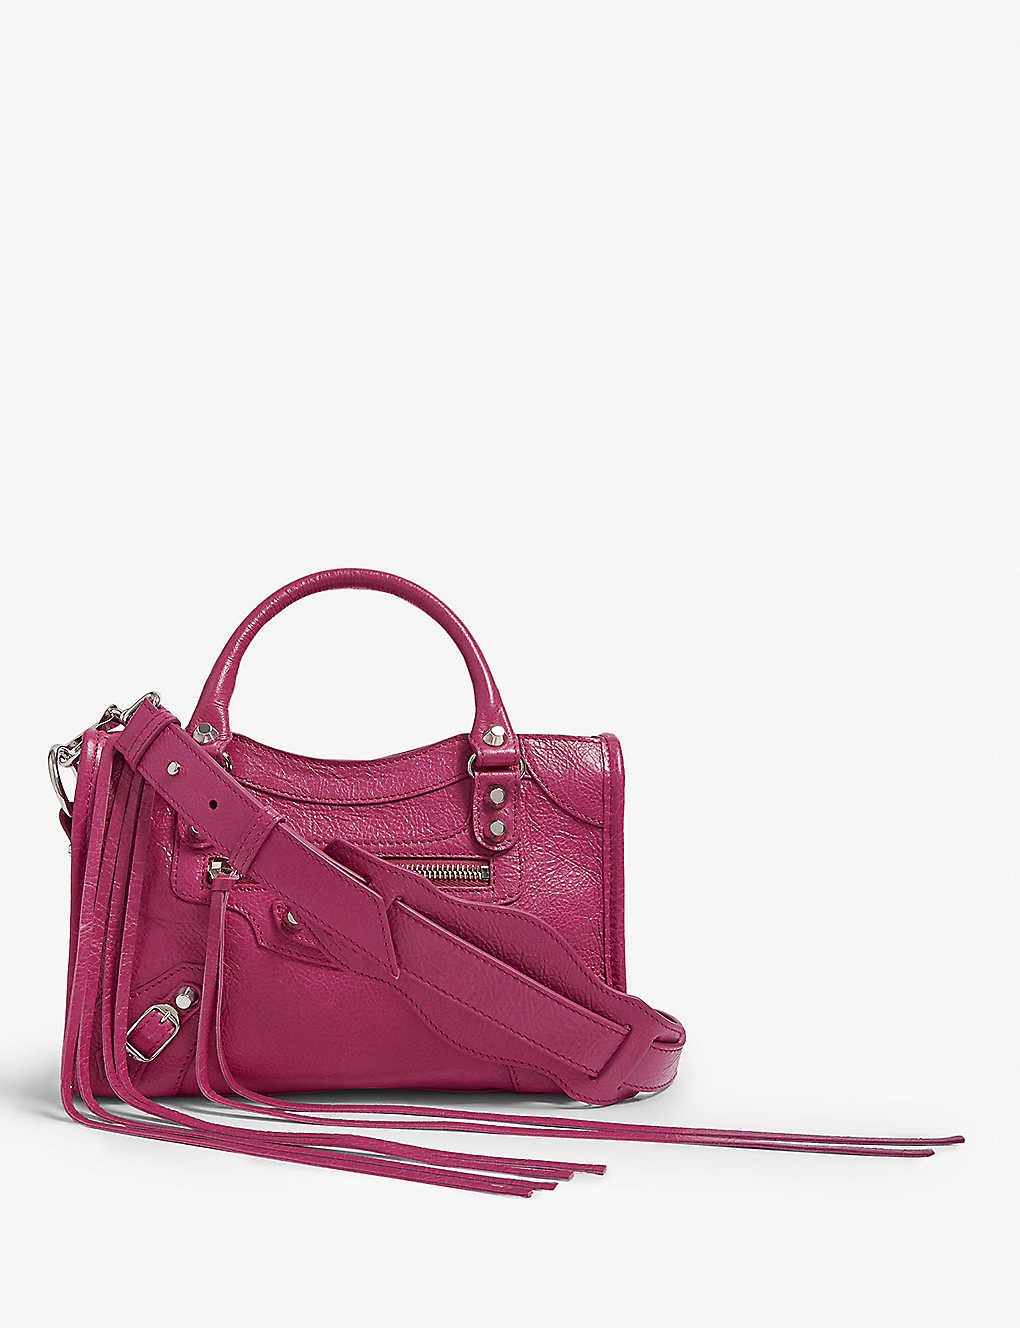 e3155de05bd BALENCIAGA - Mini City lambskin cross-body bag | Selfridges.com